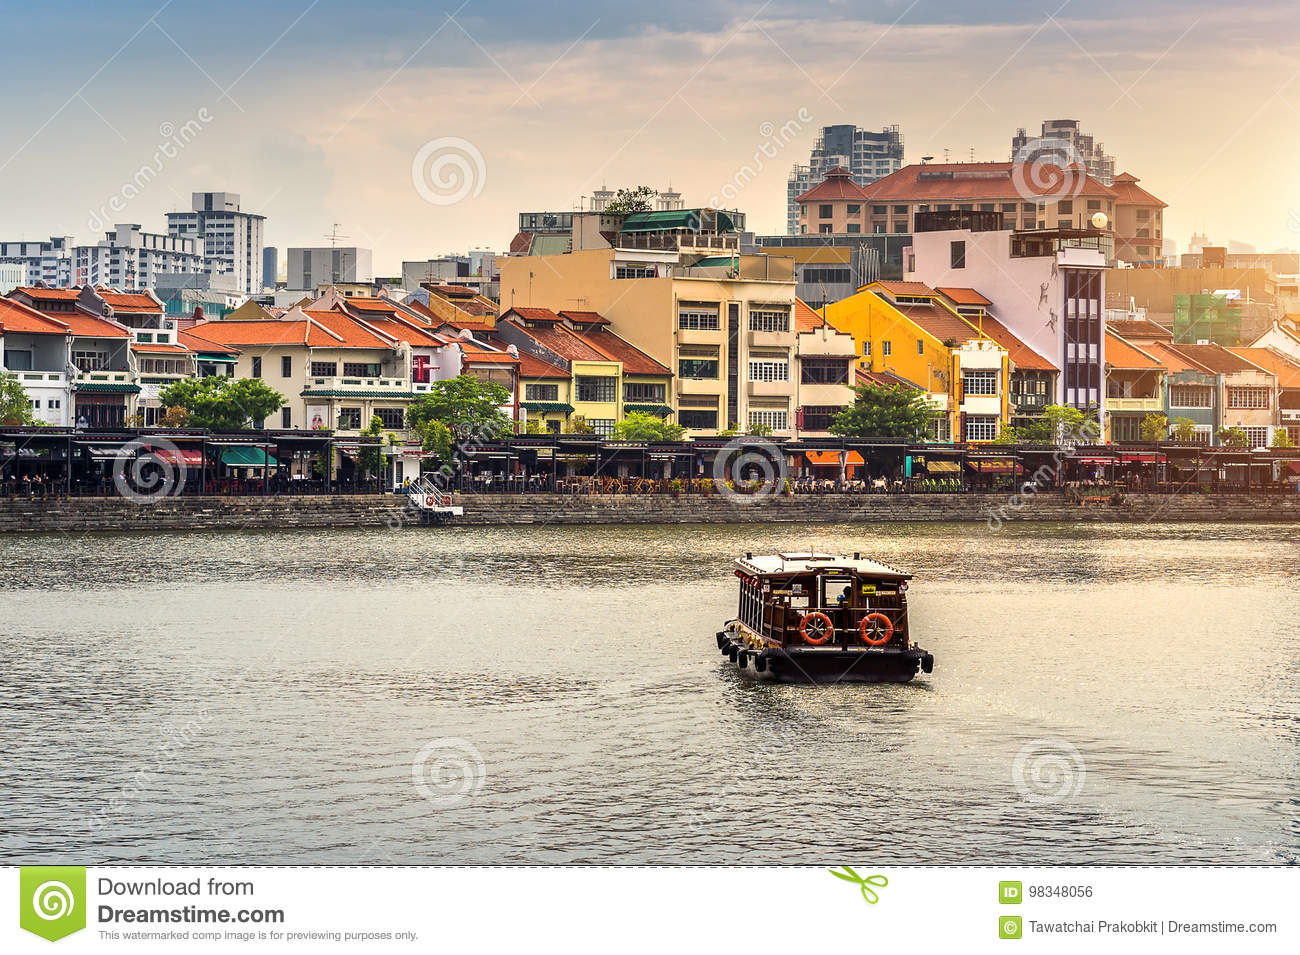 Boat and Cityscape in Singapore.